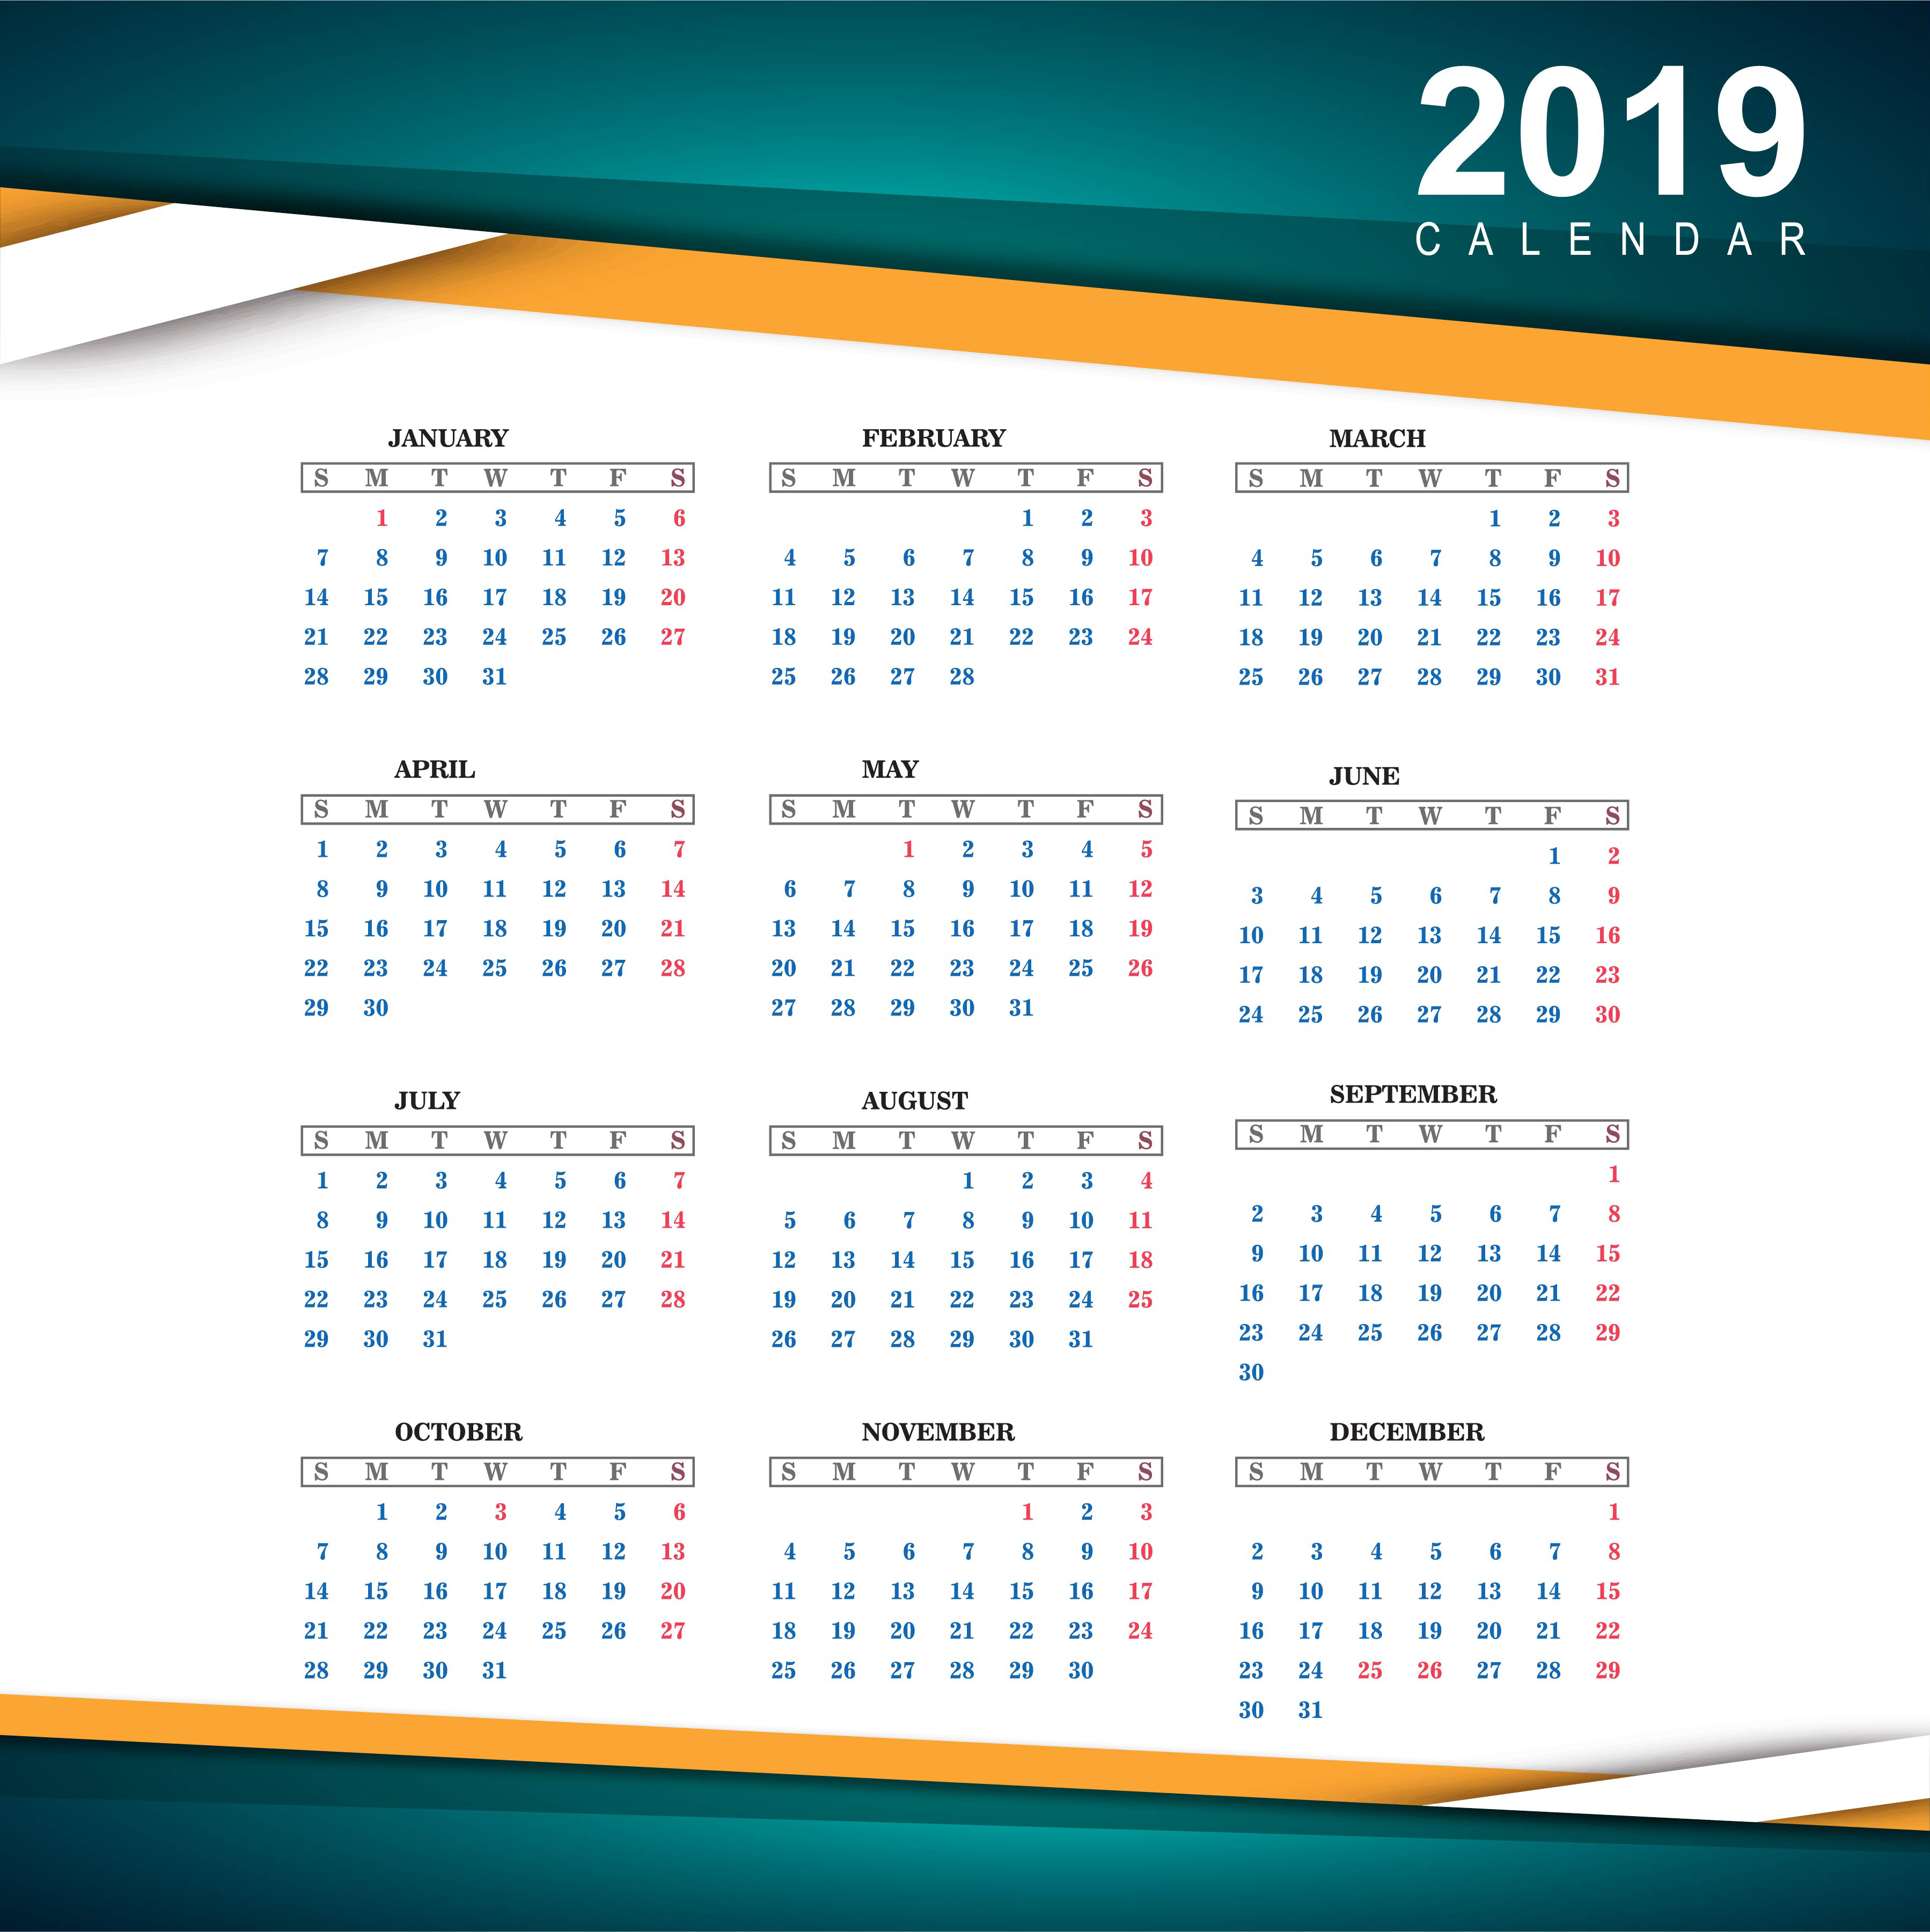 2019: Beautiful 2019 Colorful Calendar Template